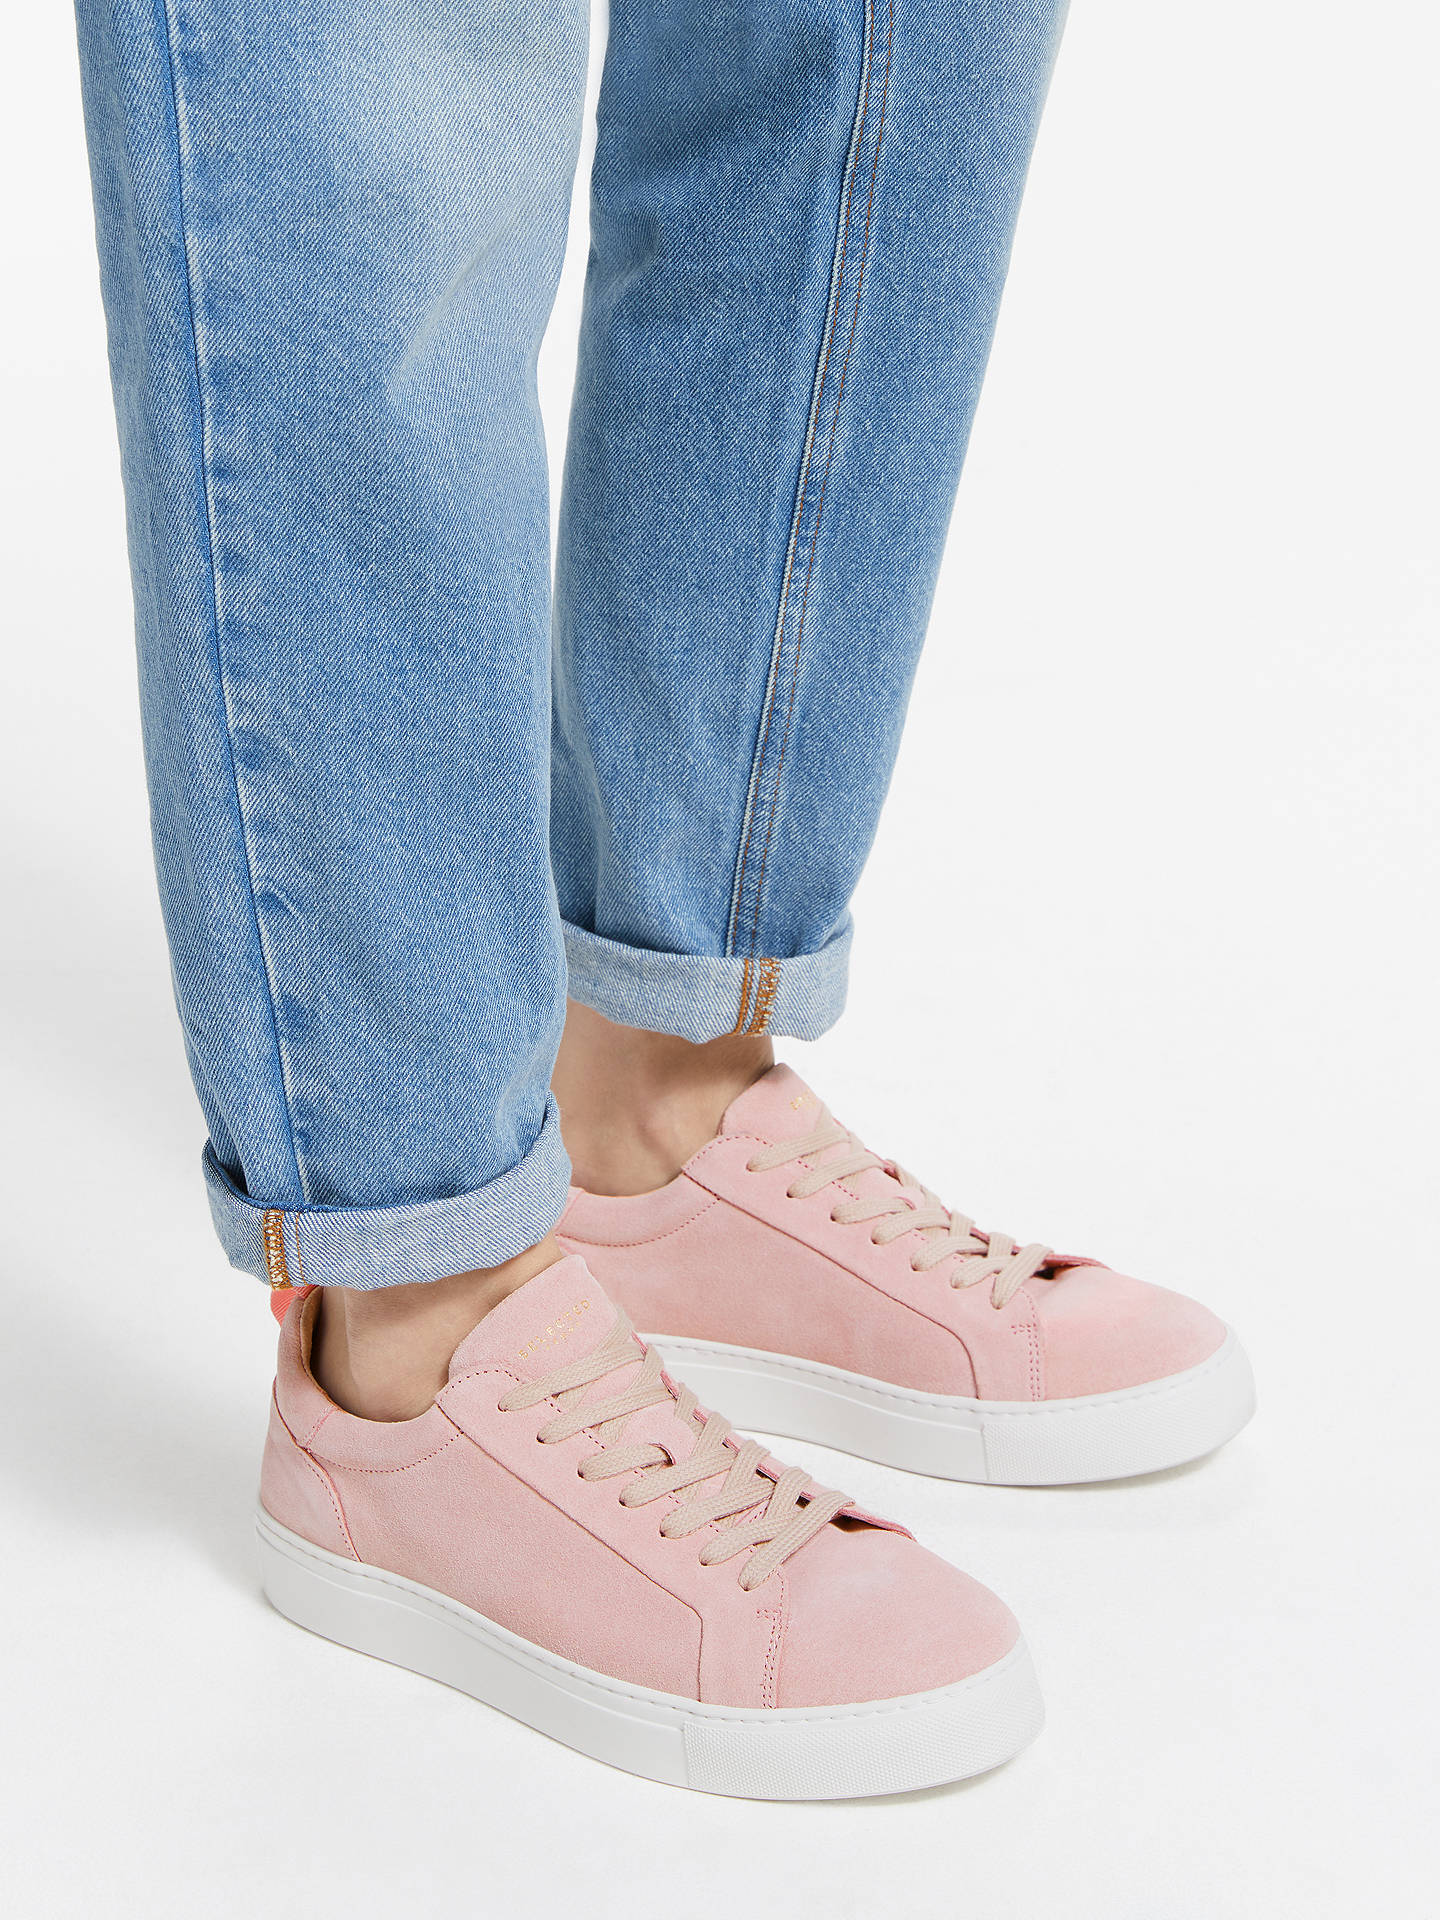 3d2d7ad9d91 ... Buy Selected Femme Donna Trainers, Heavenly Pink Suede, 8 Online at  johnlewis.com ...